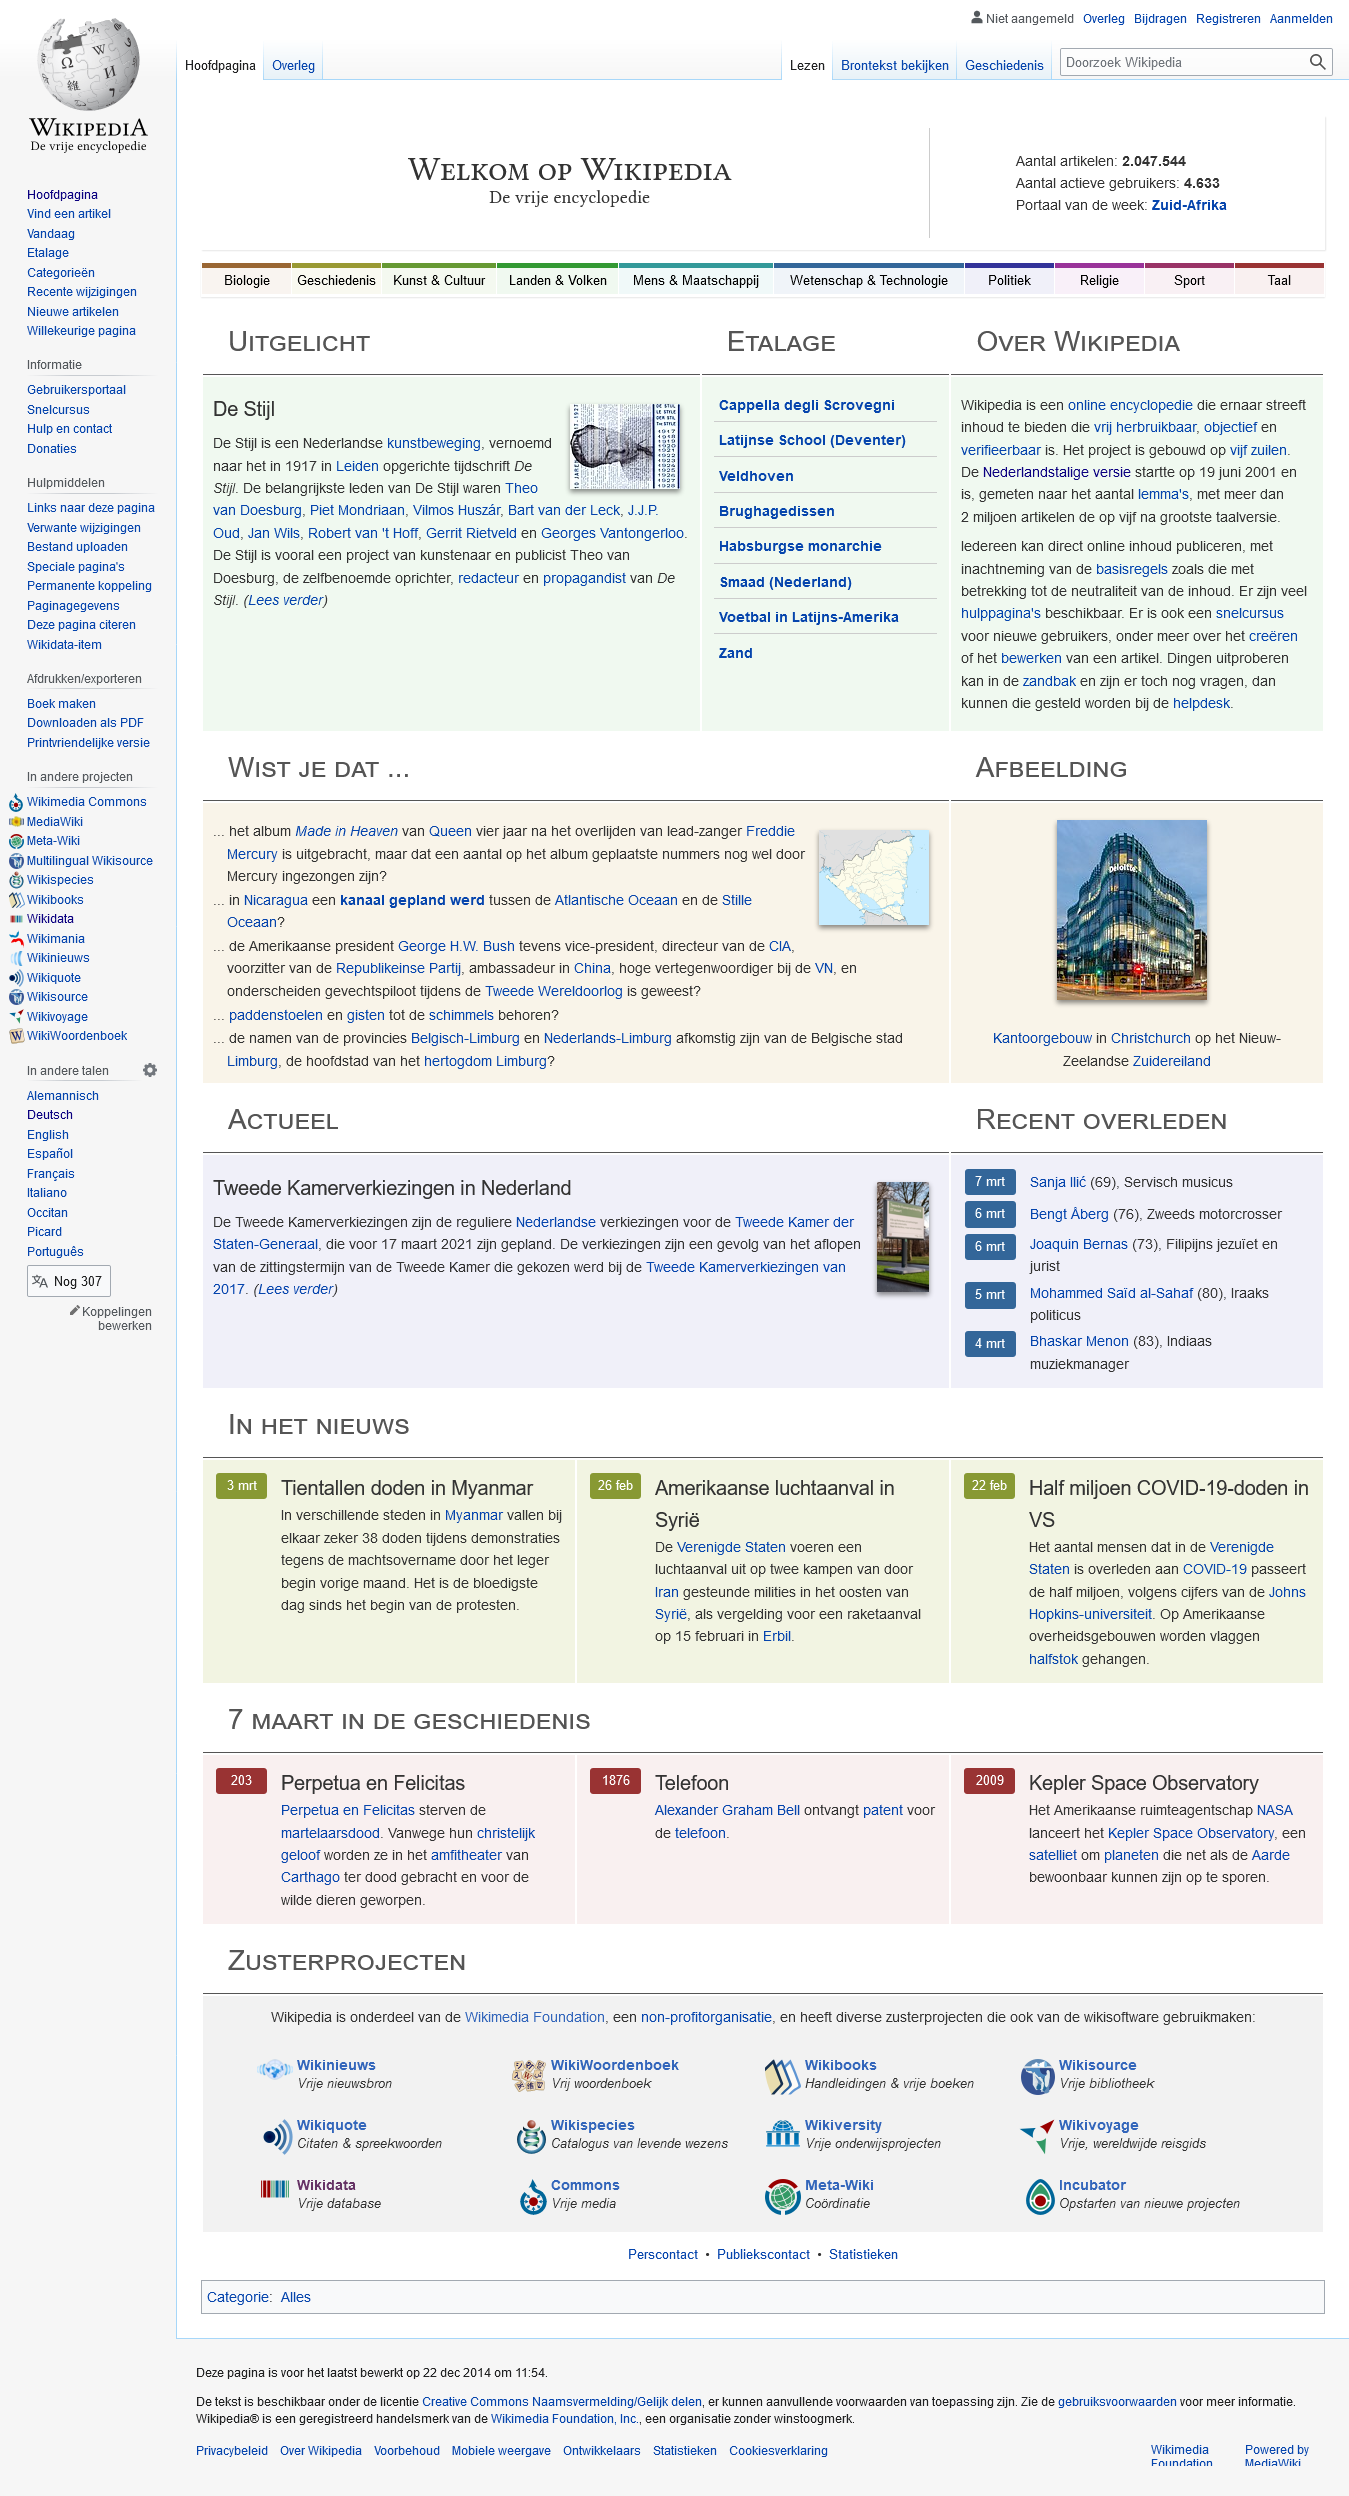 The Dutch Wikipedia in September 2015